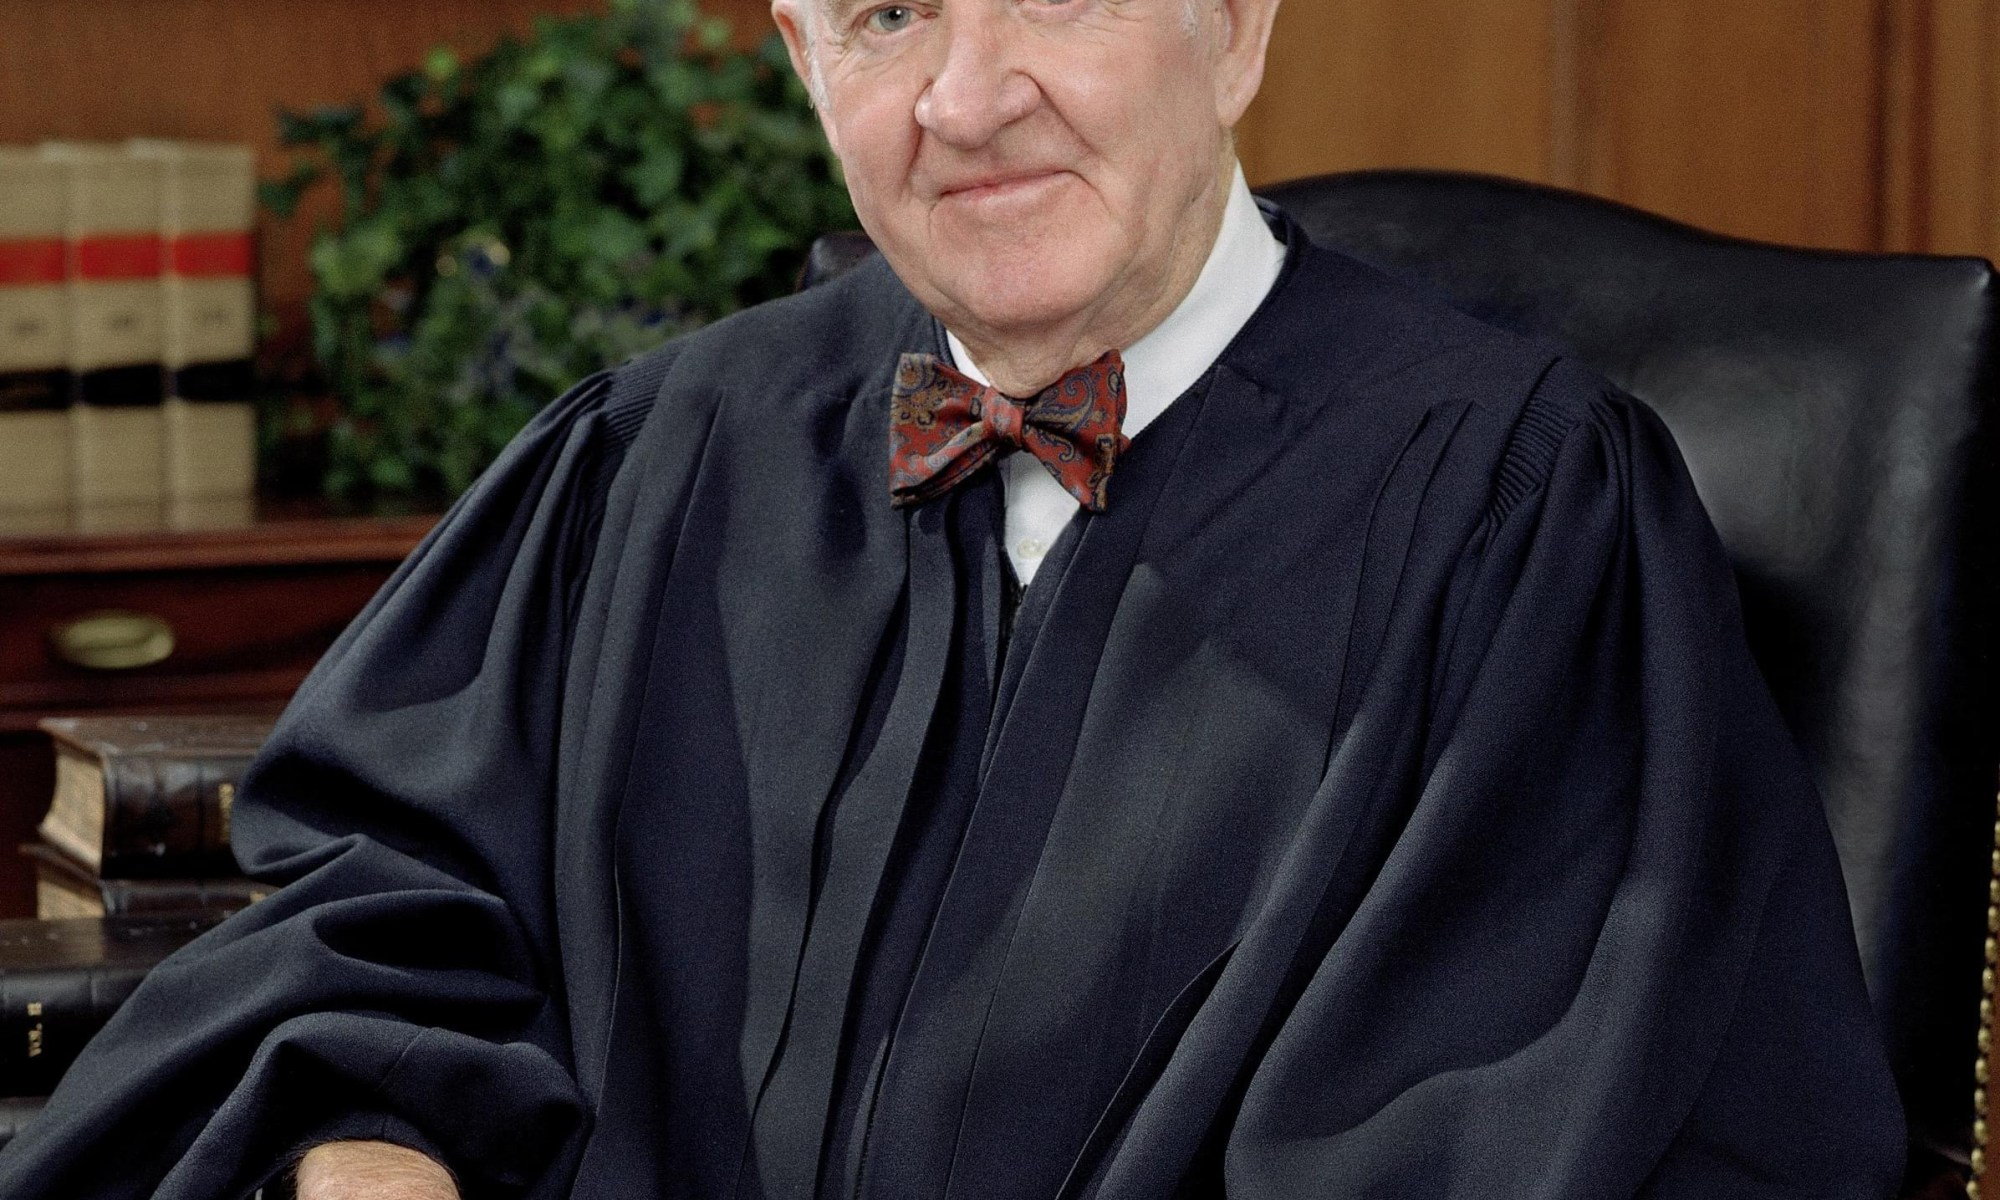 Fallece el exjuez del Supremo federal John Paul Stevens